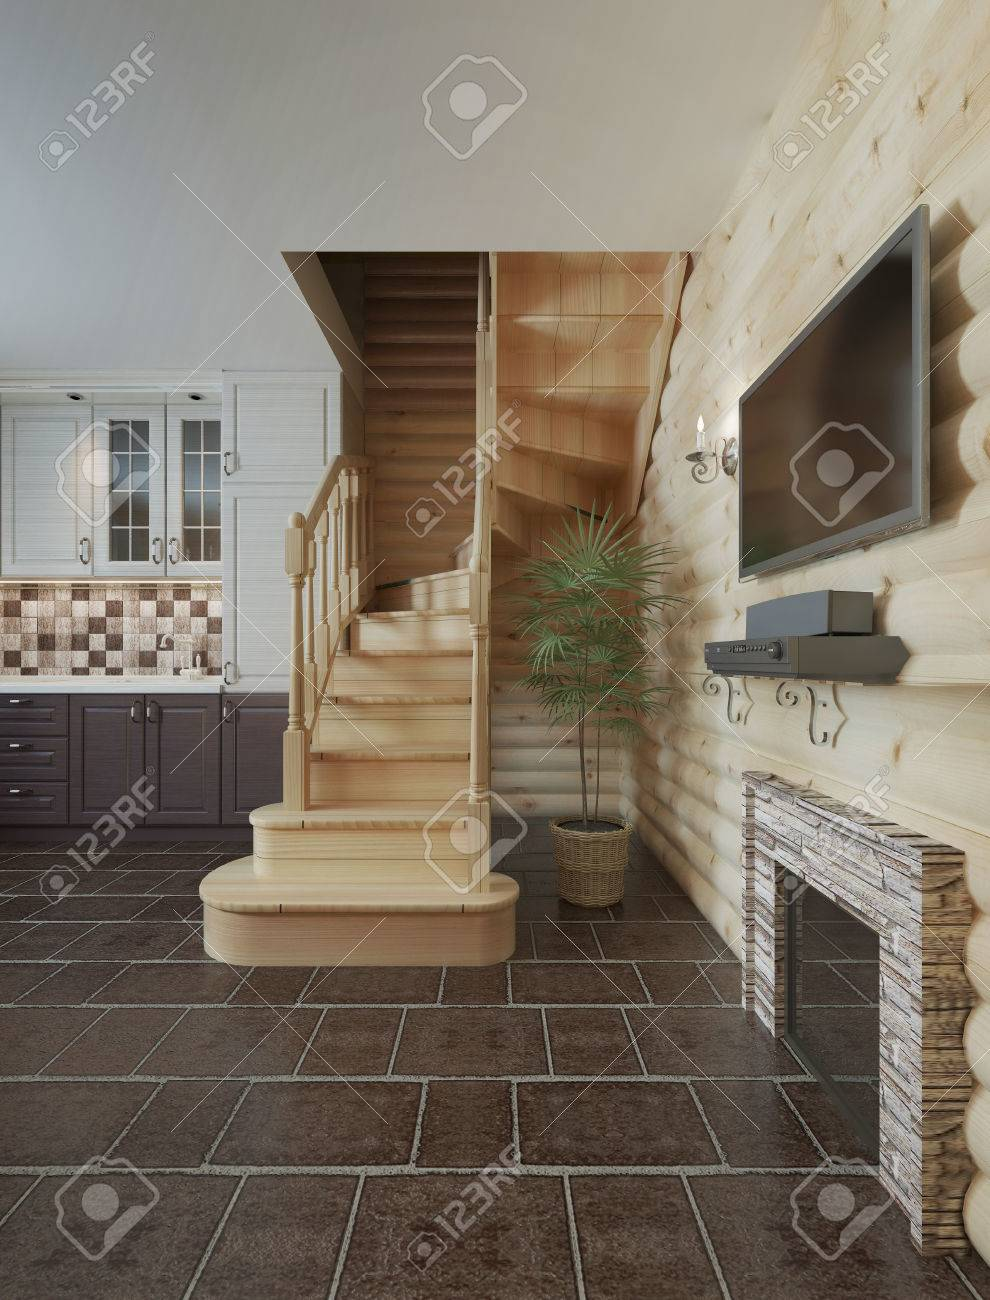 The Flight Of Stairs In The Kitchen Dining Room Log Cabin Interior. Wooden  Stairs To